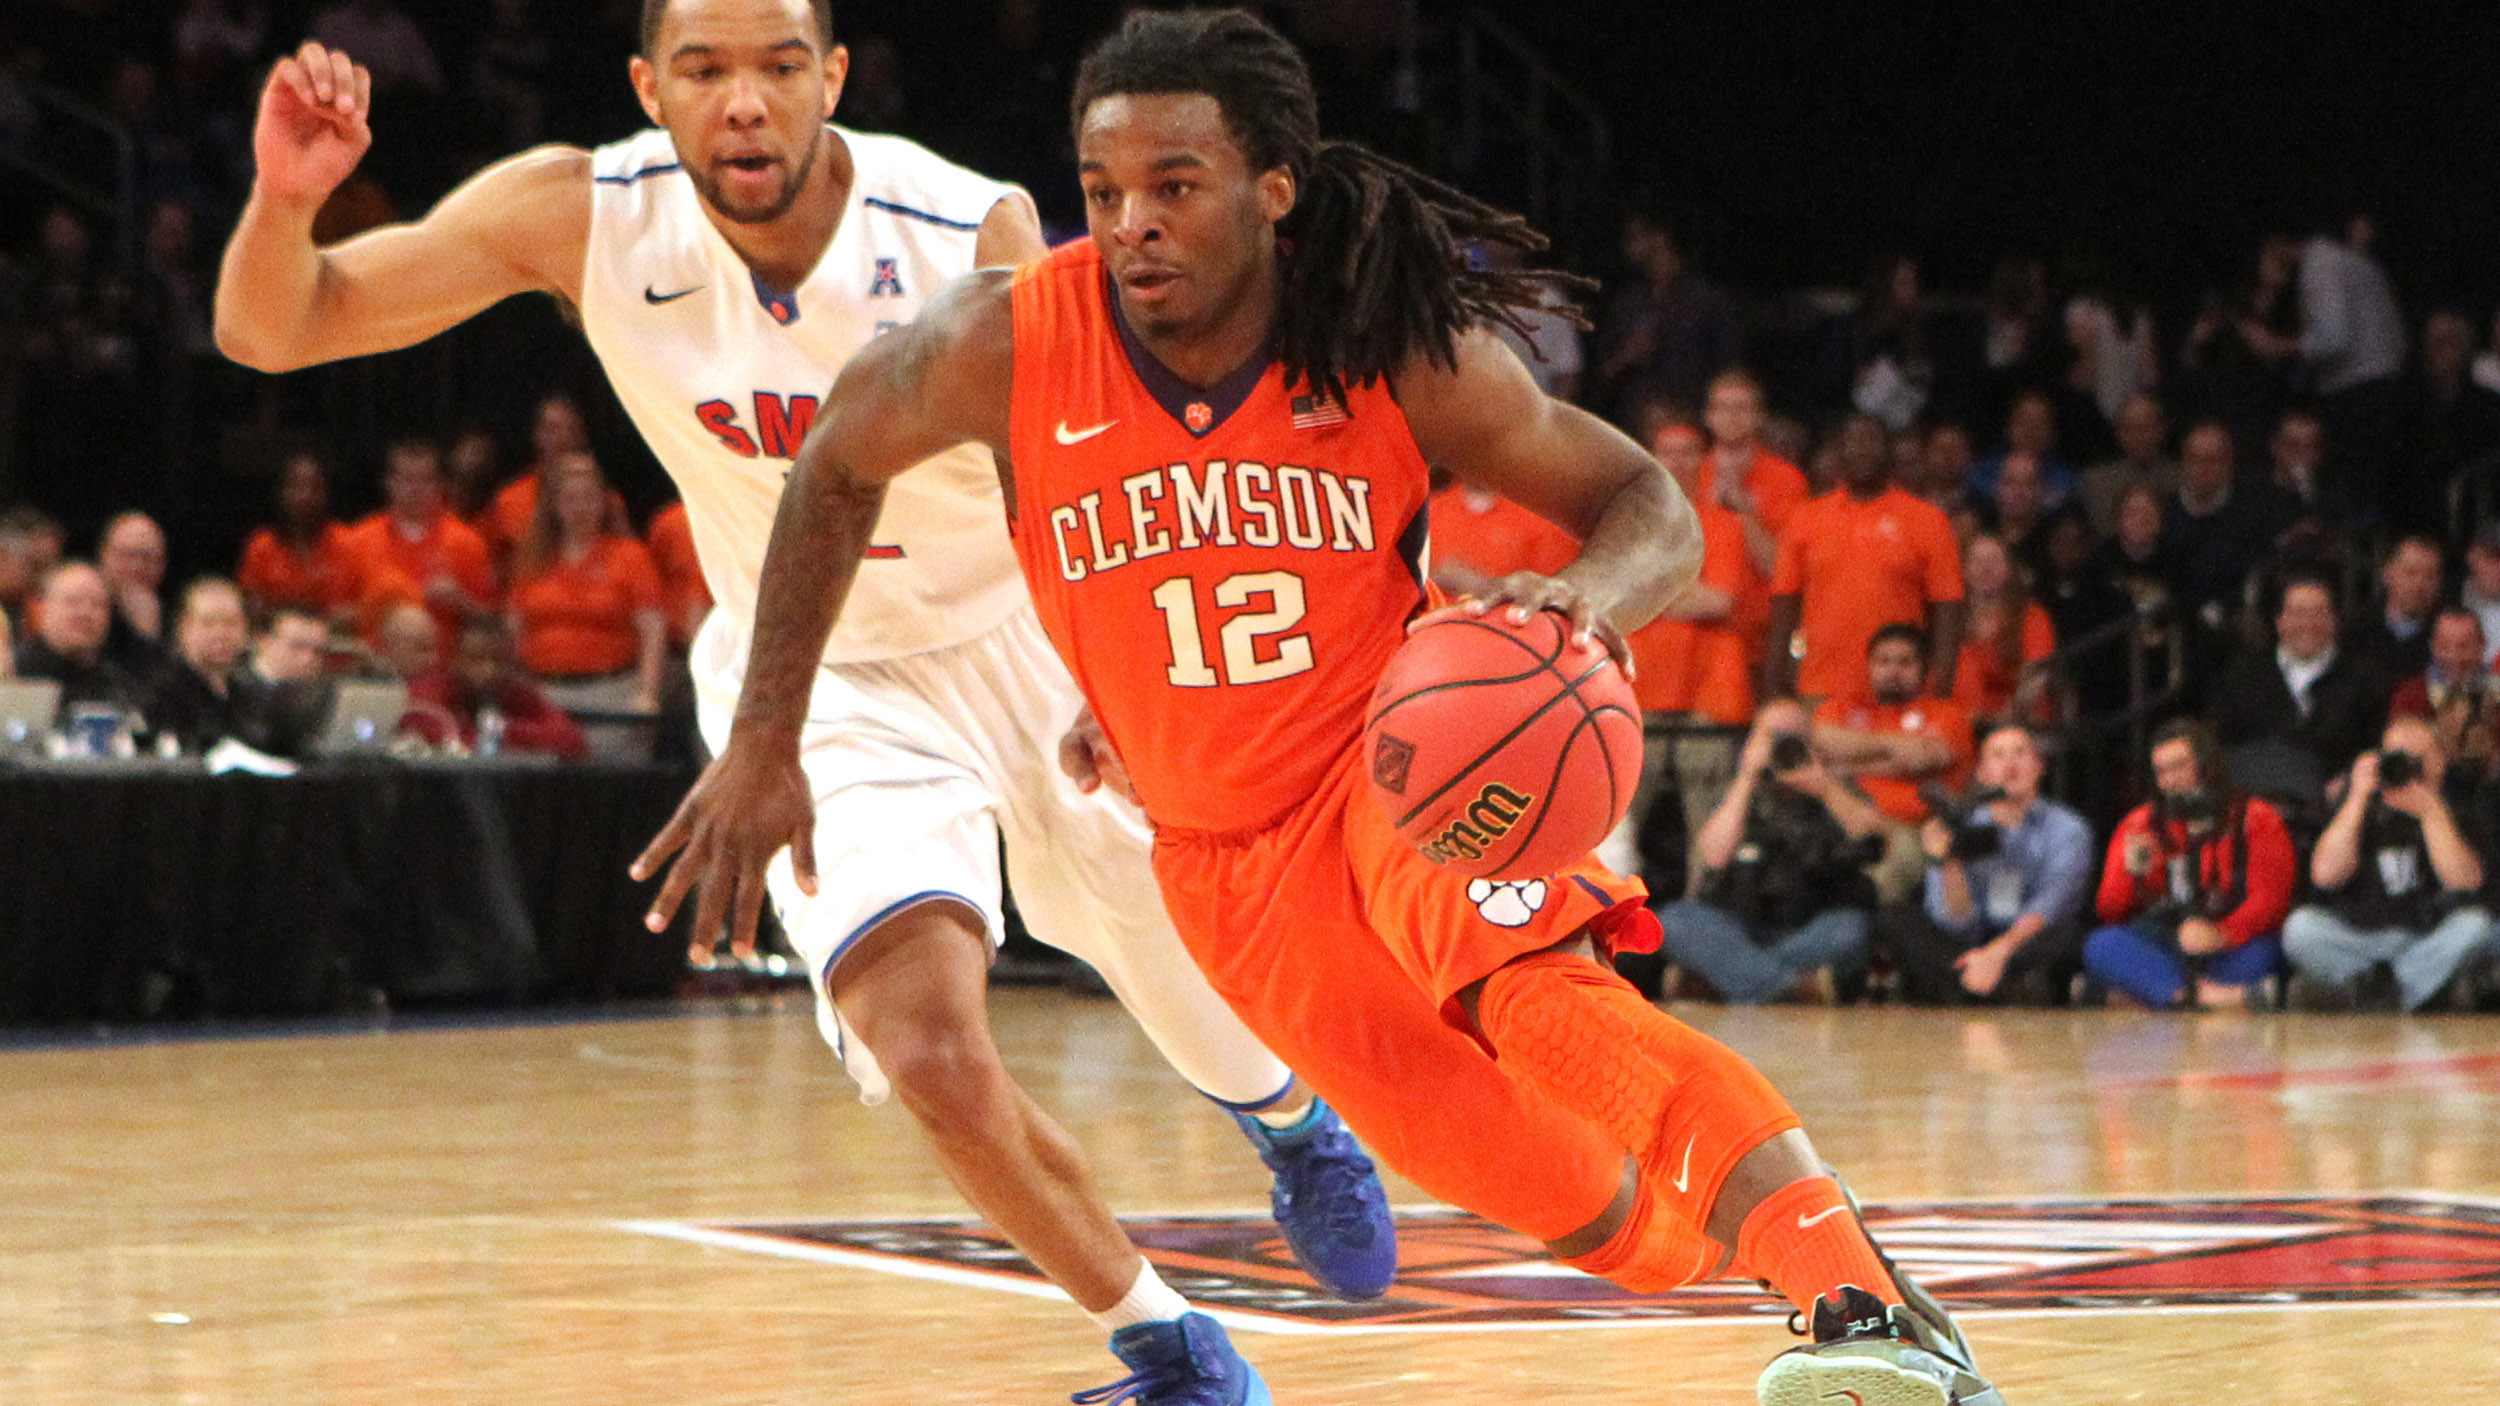 Clemson Season Ends with 65-59 Loss to SMU in NIT Semifinals